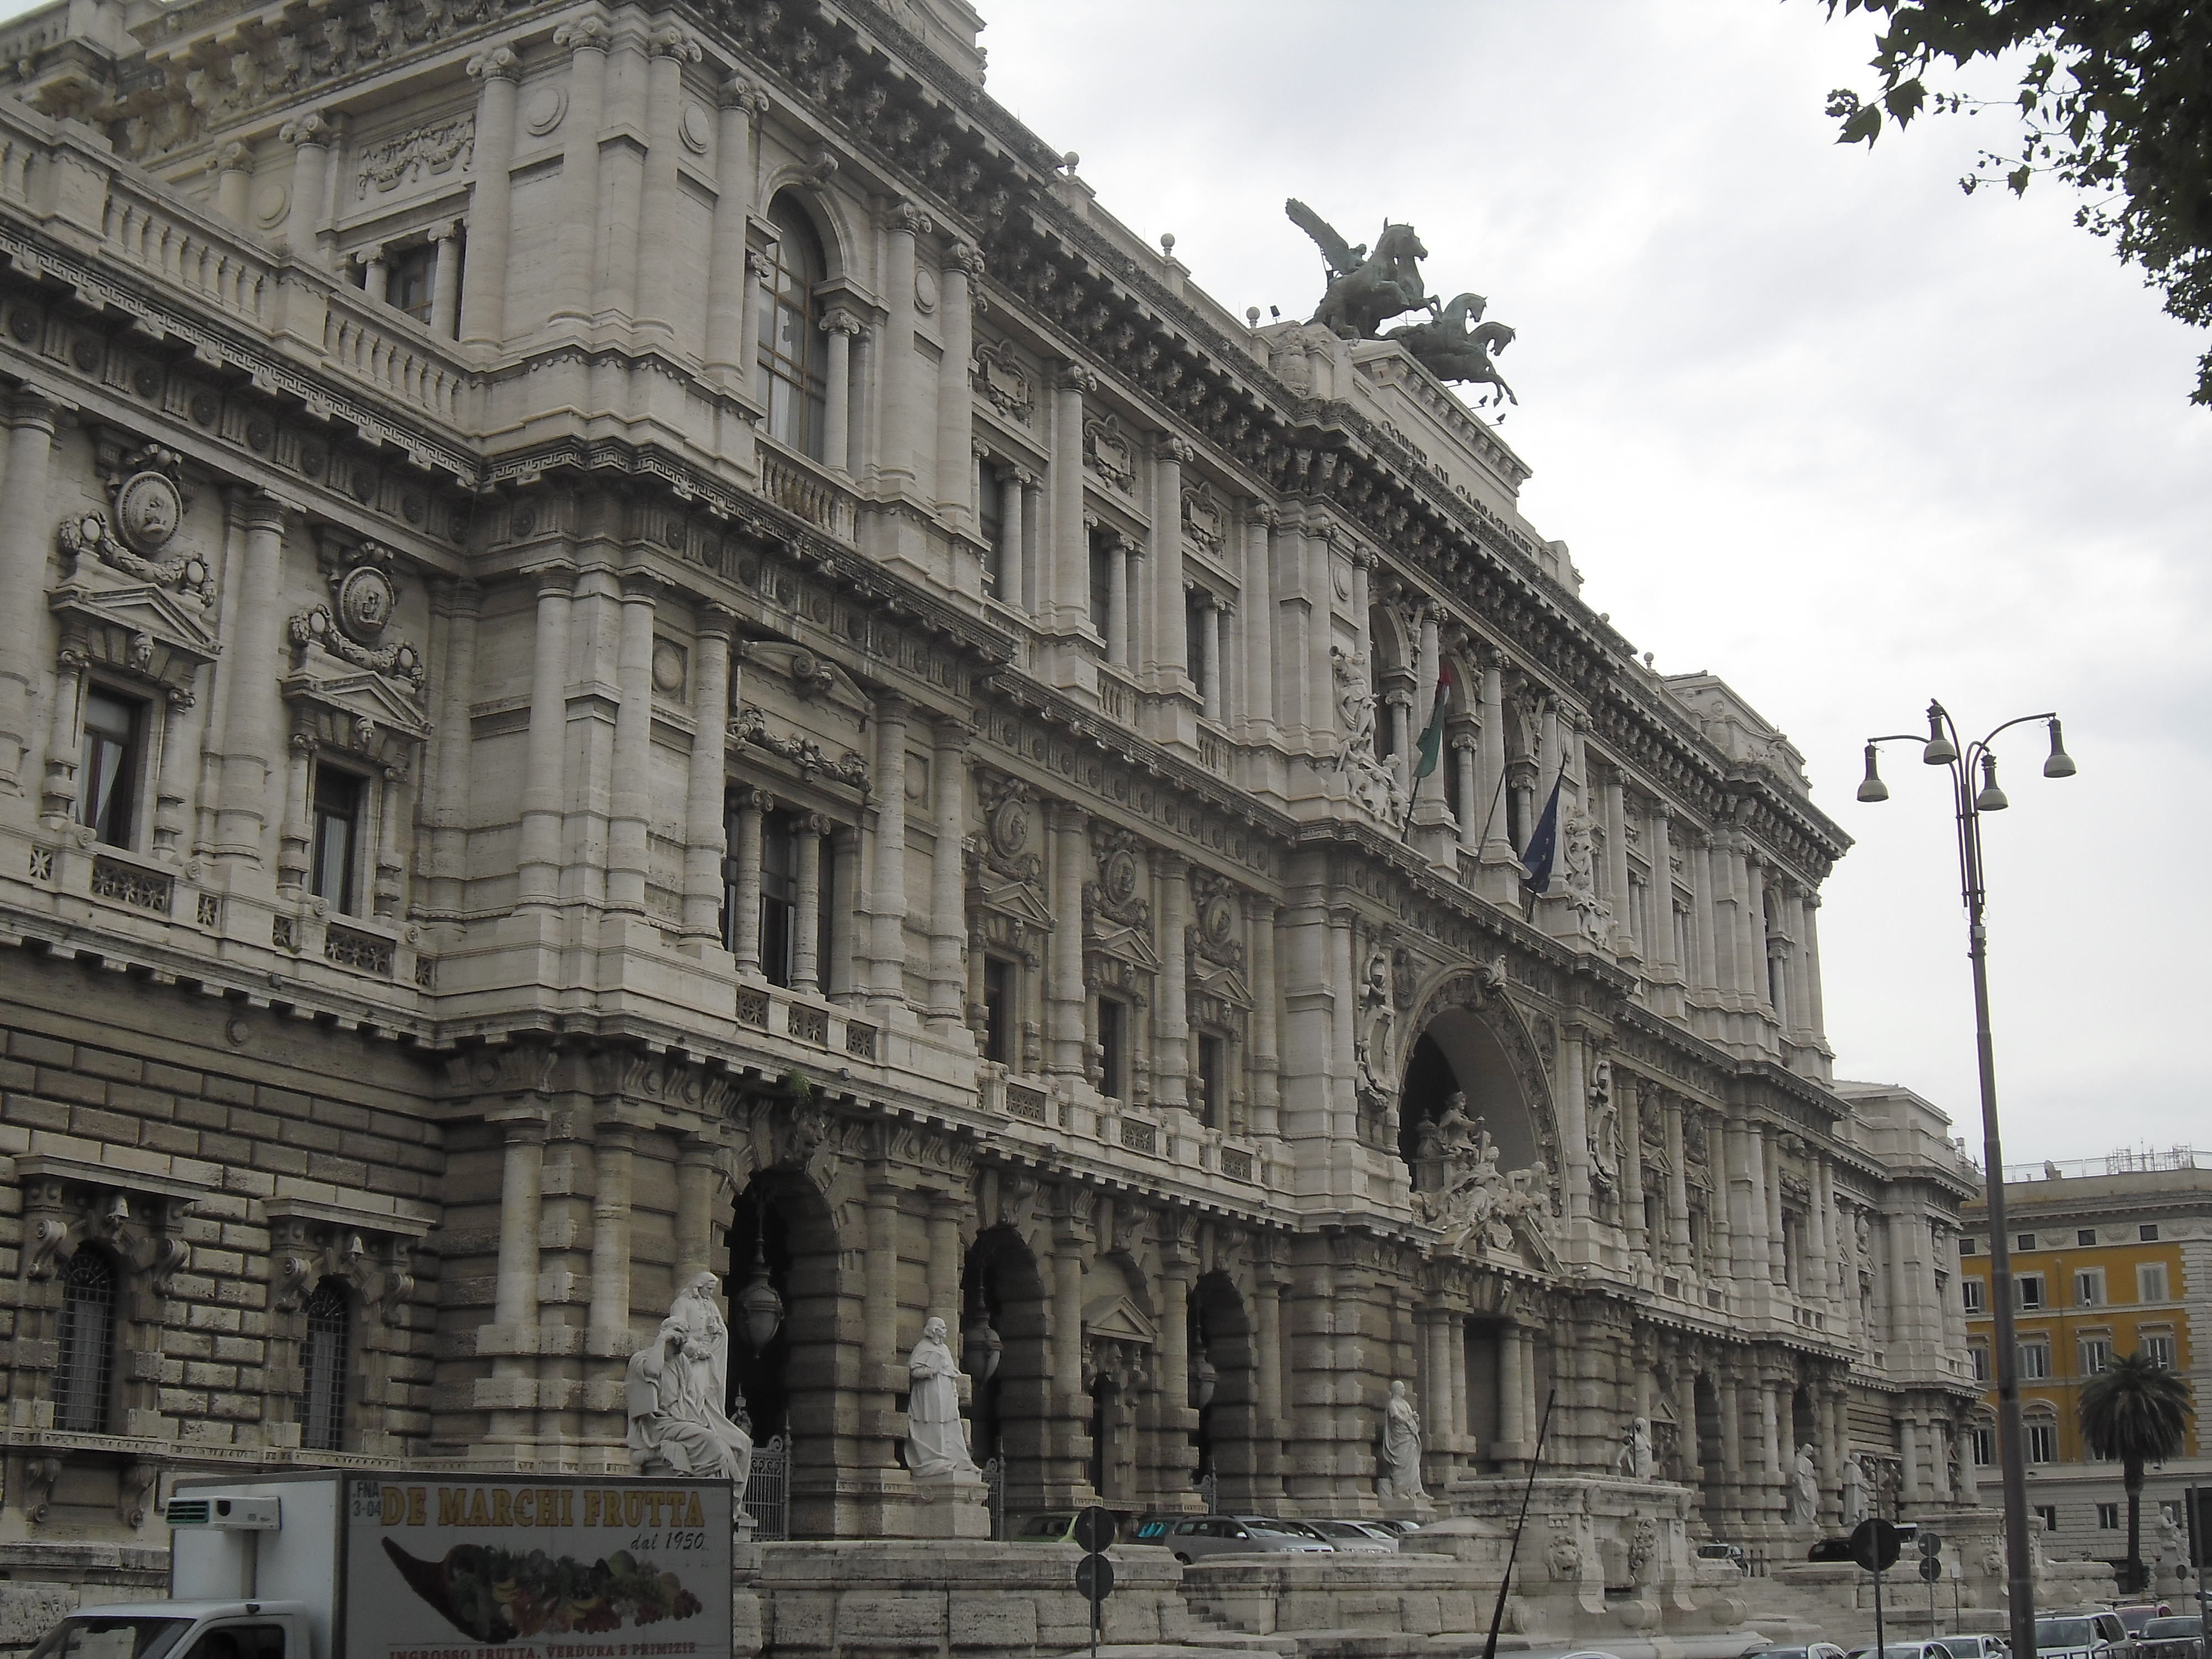 roma-palace-of-justice-aug13